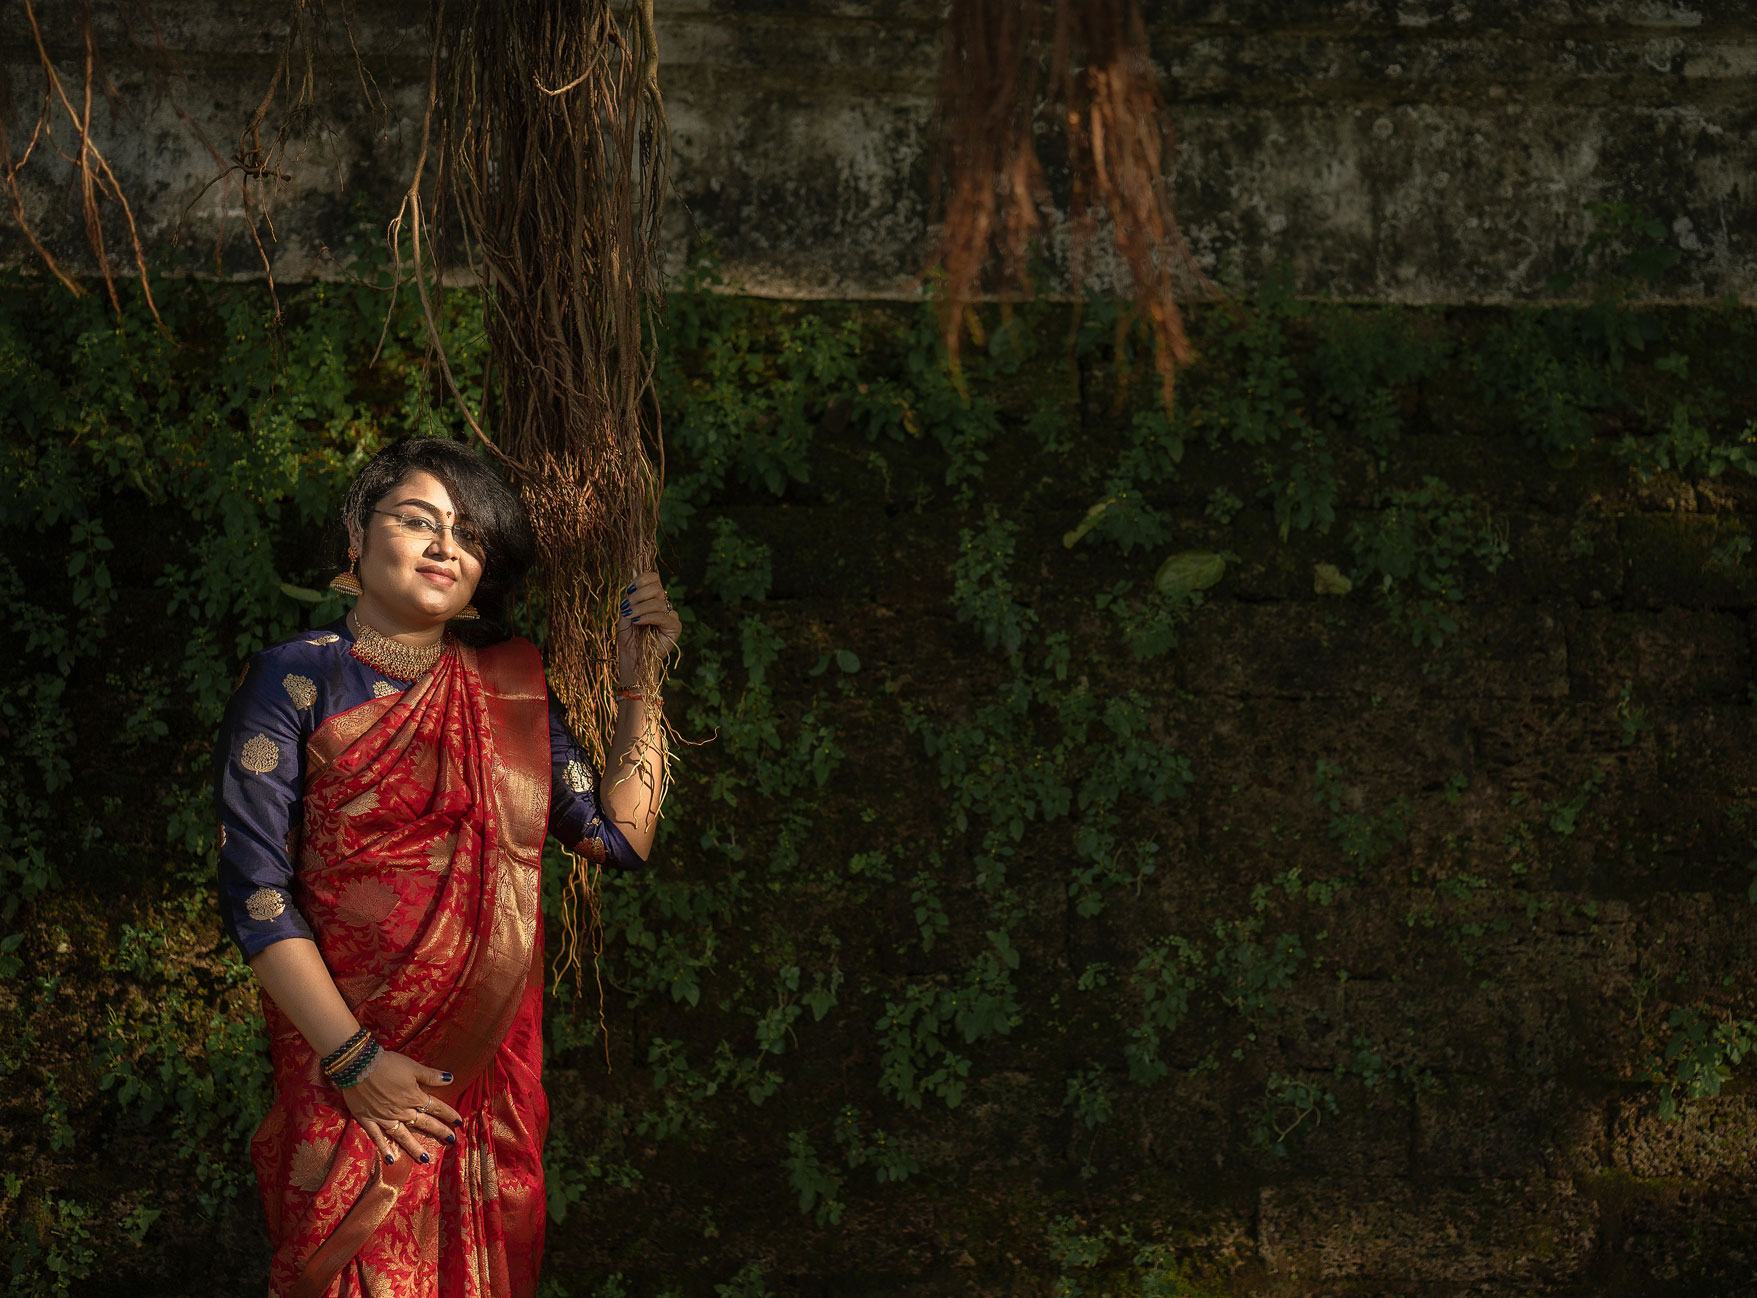 Best Maternity Photographers in Thrissur, Kerala